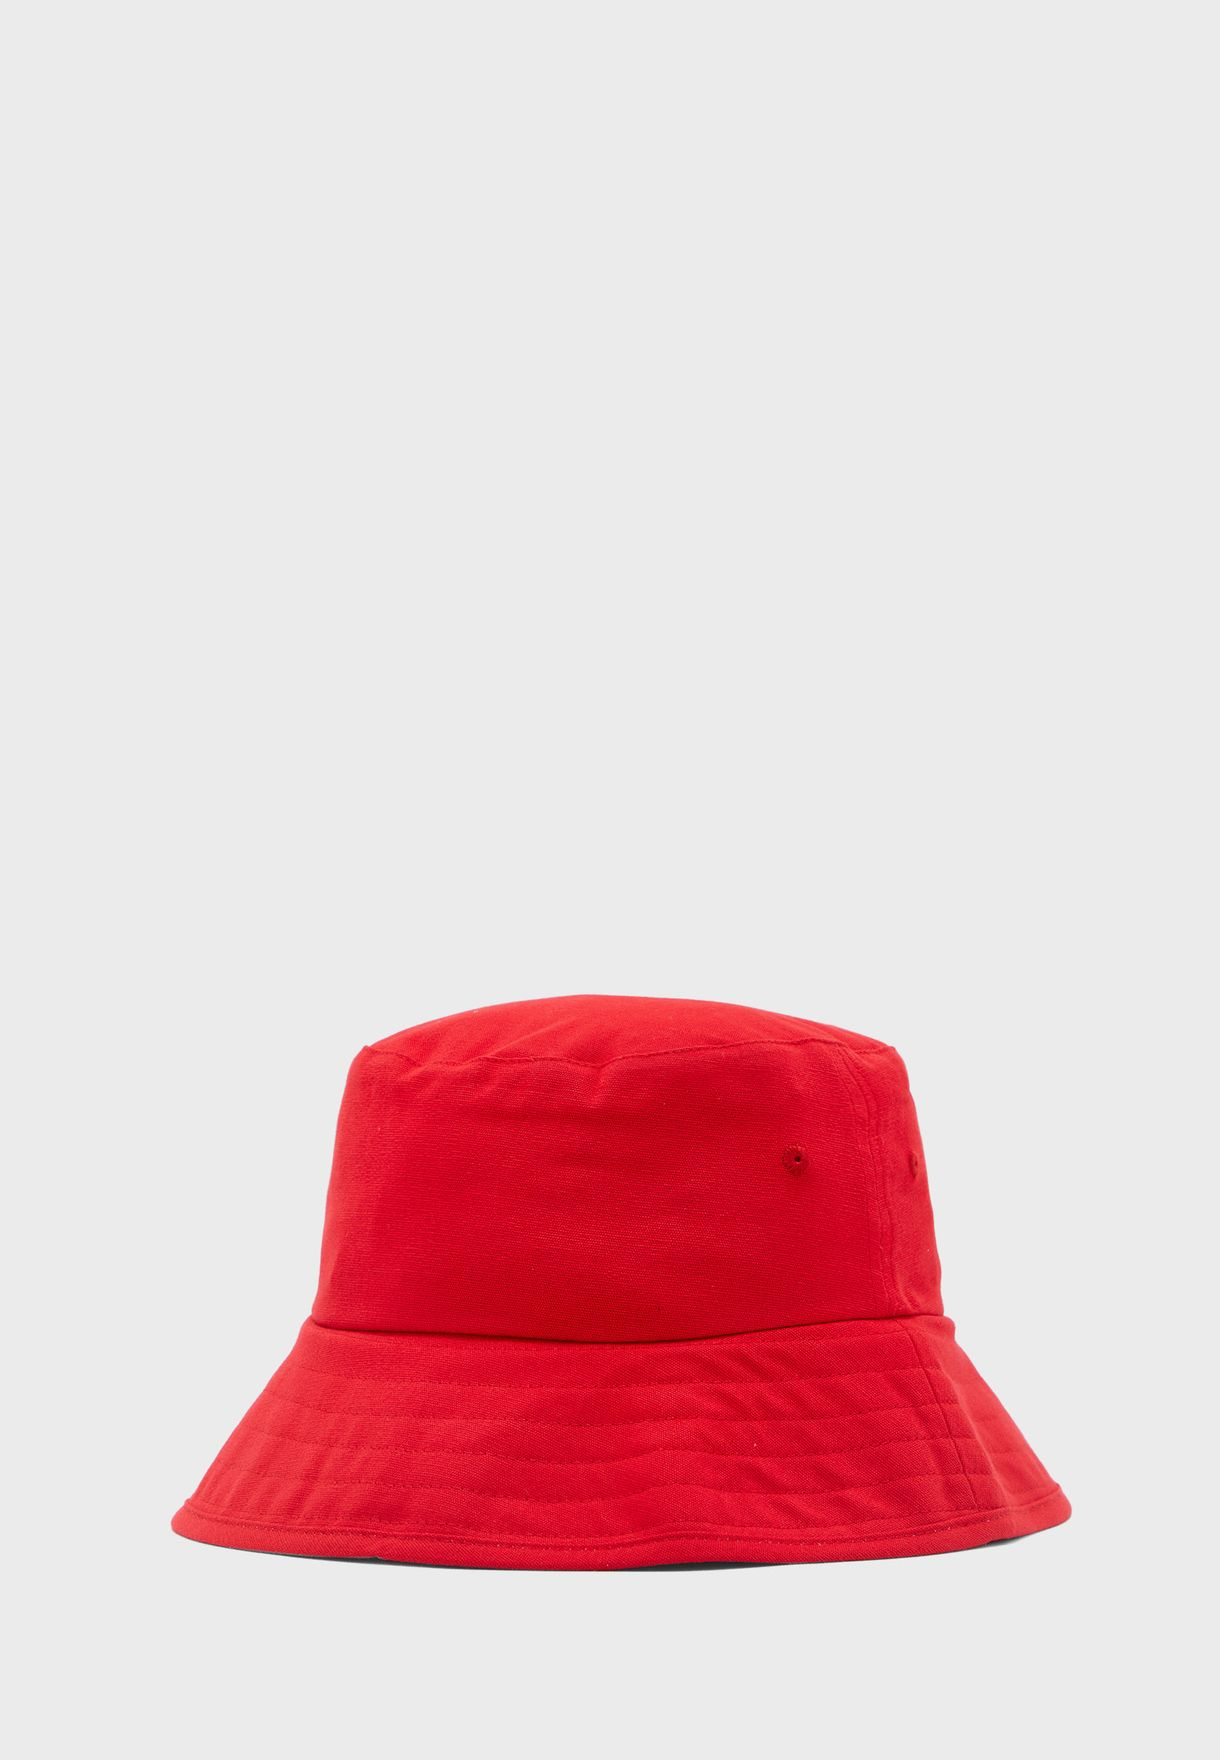 Buy Forever 21 Red Wool Fedora Bucket Hat For Women In Kuwait City Other Cities 351152